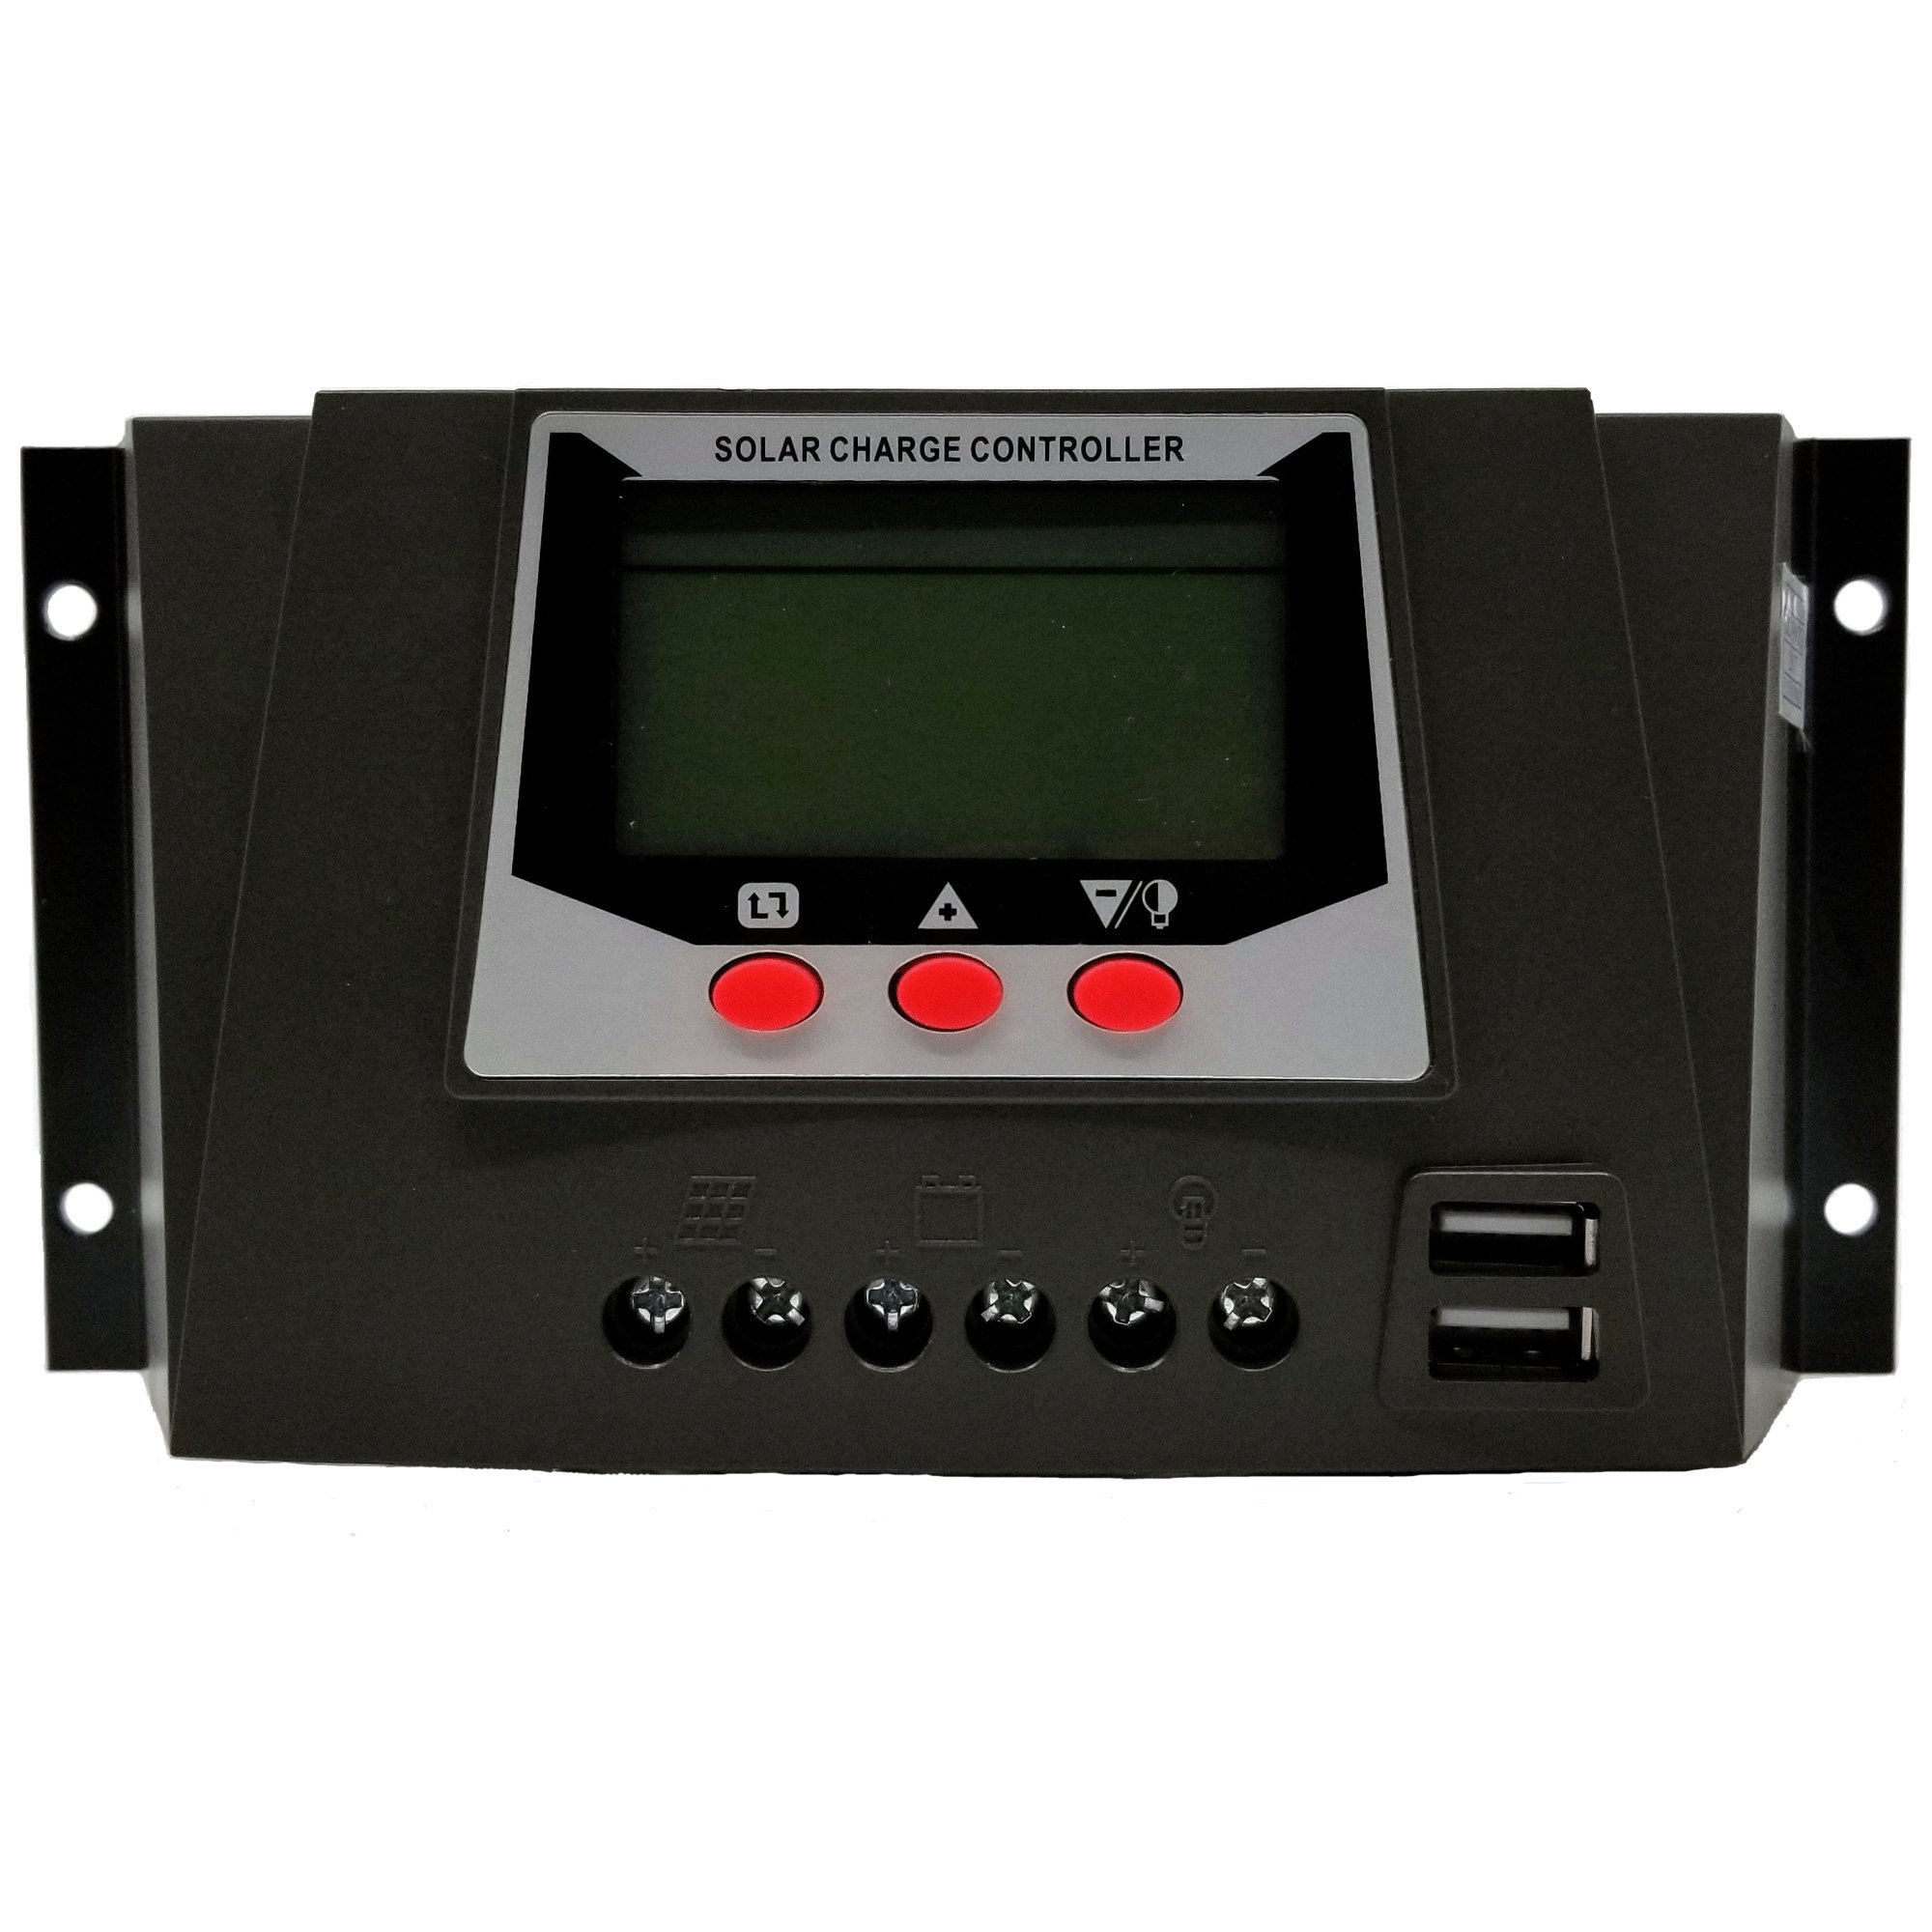 30A Solar Charge Controller 12V 24V Auto 50V PV Input PWM Regulators Support Lithium Battery Charger with Dual USB 5V Output Backlight LCD Monitor with Temperature Compensation